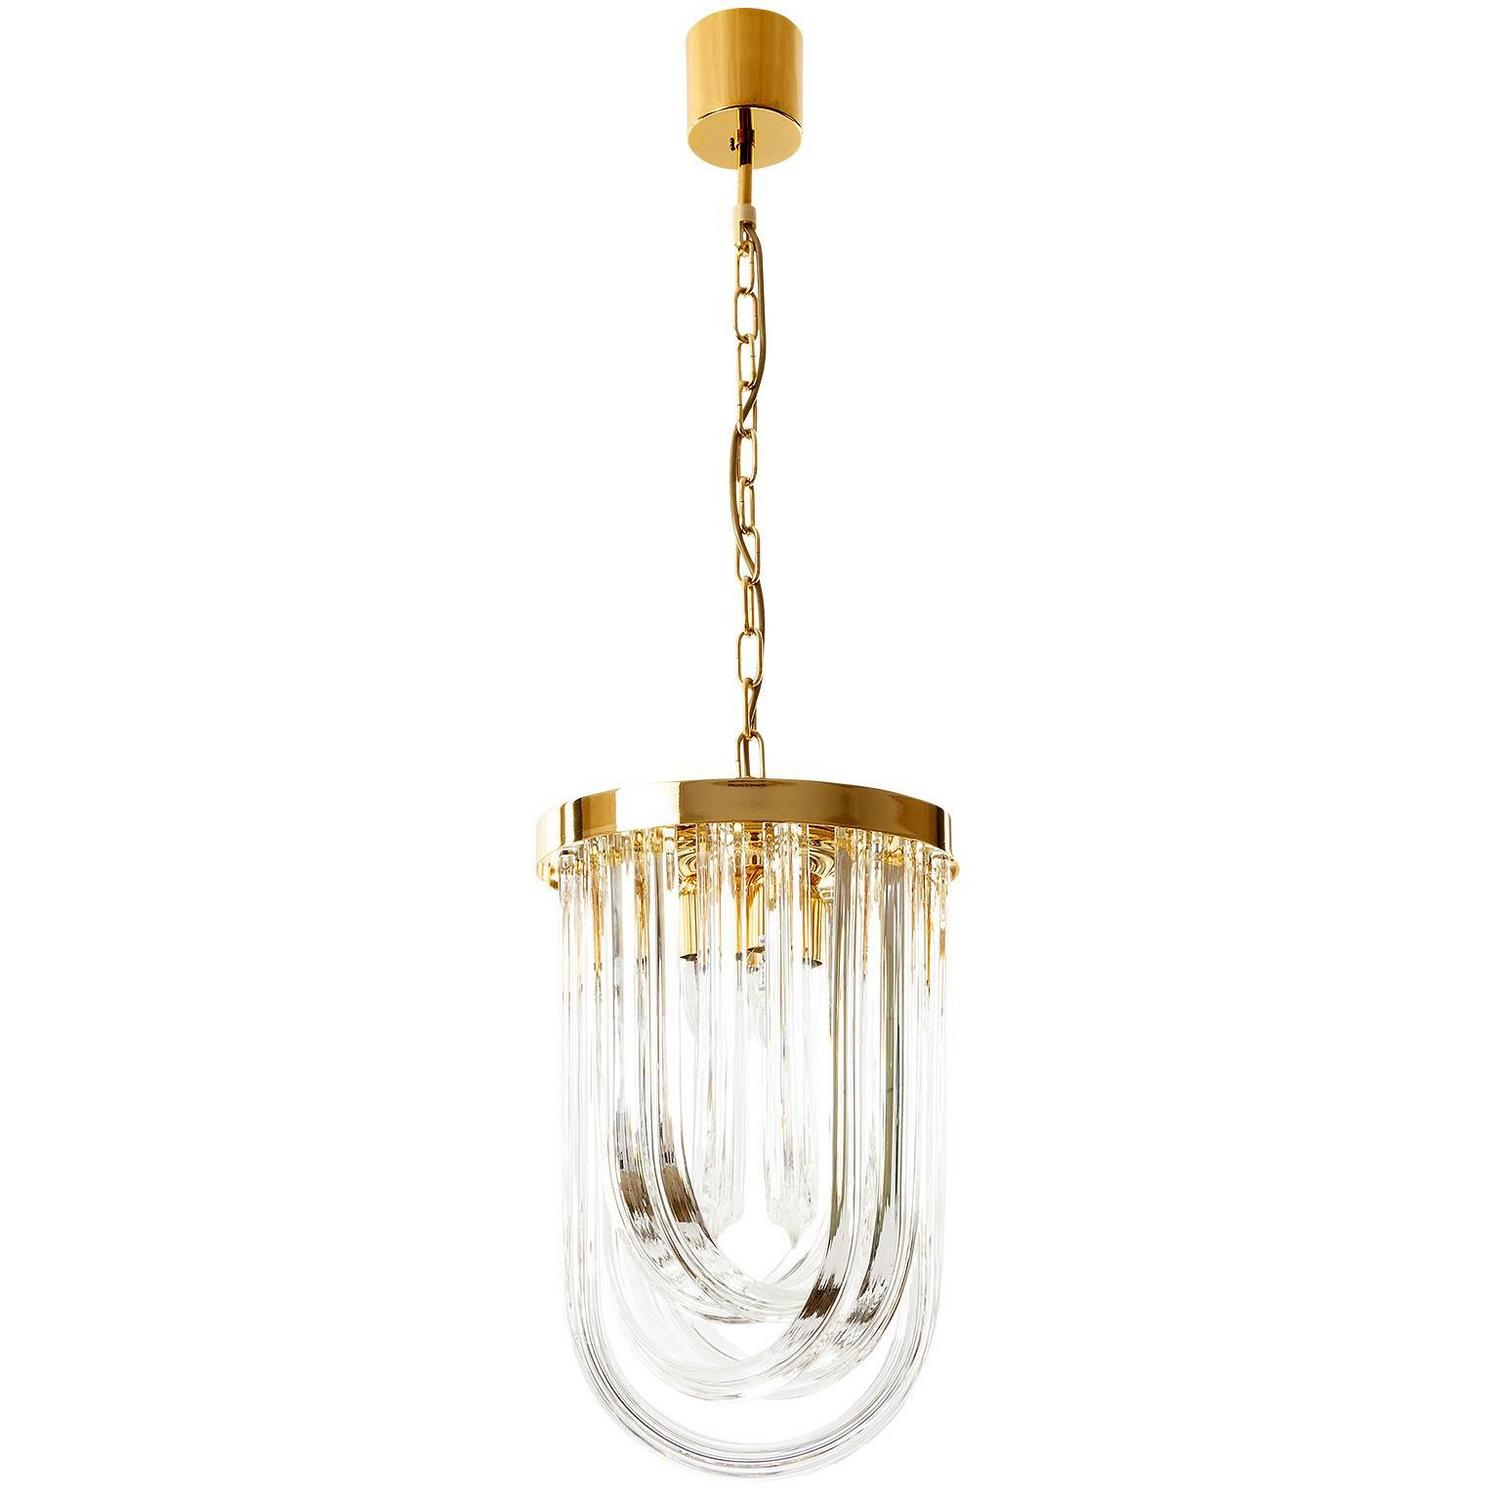 Venini Pendant Light Chandelier Curved Crystal Glass And